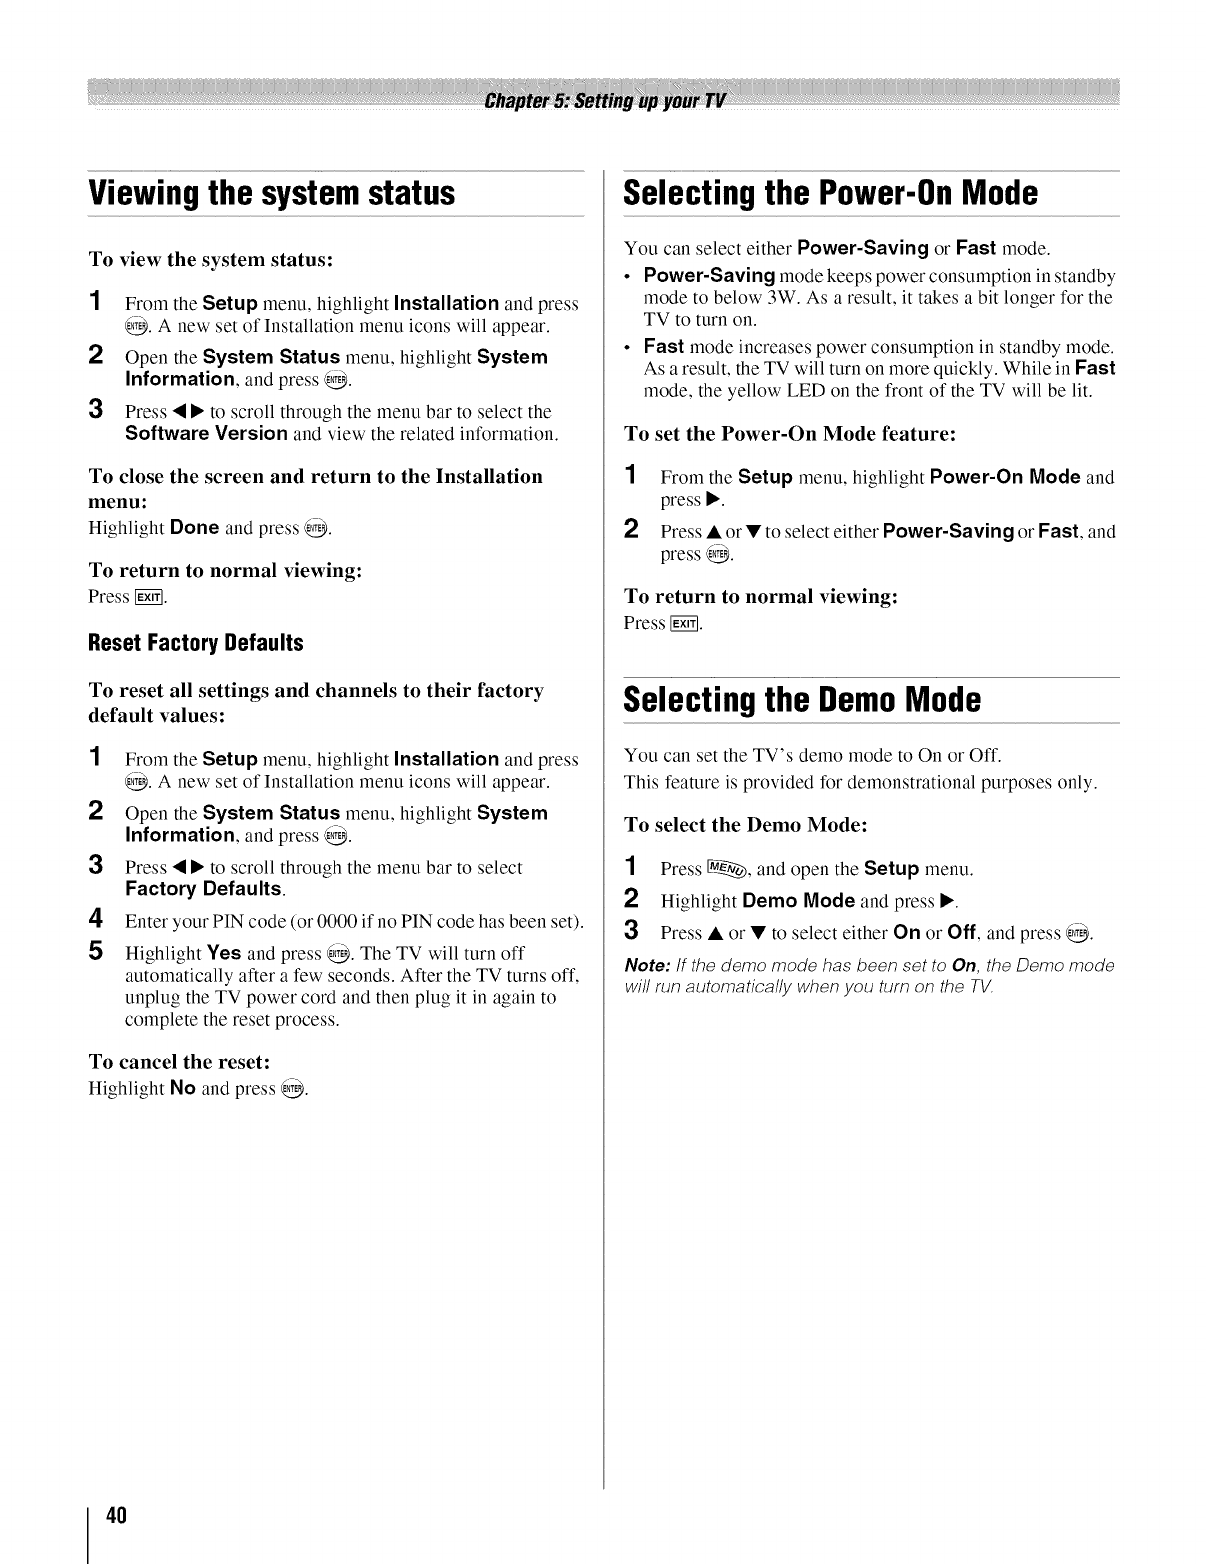 Page 40 of Toshiba Flat Panel Television 46XV540U User Guide